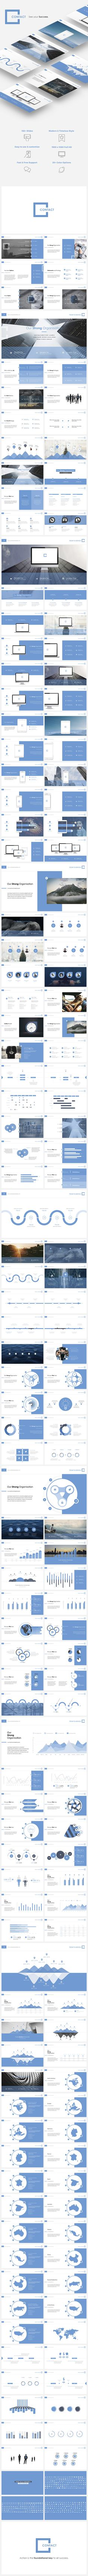 Contact Powerpoint  #chart #clean #corporate • Available here → http://graphicriver.net/item/contact-powerpoint/15876636?s_rank=140&ref=pxcr